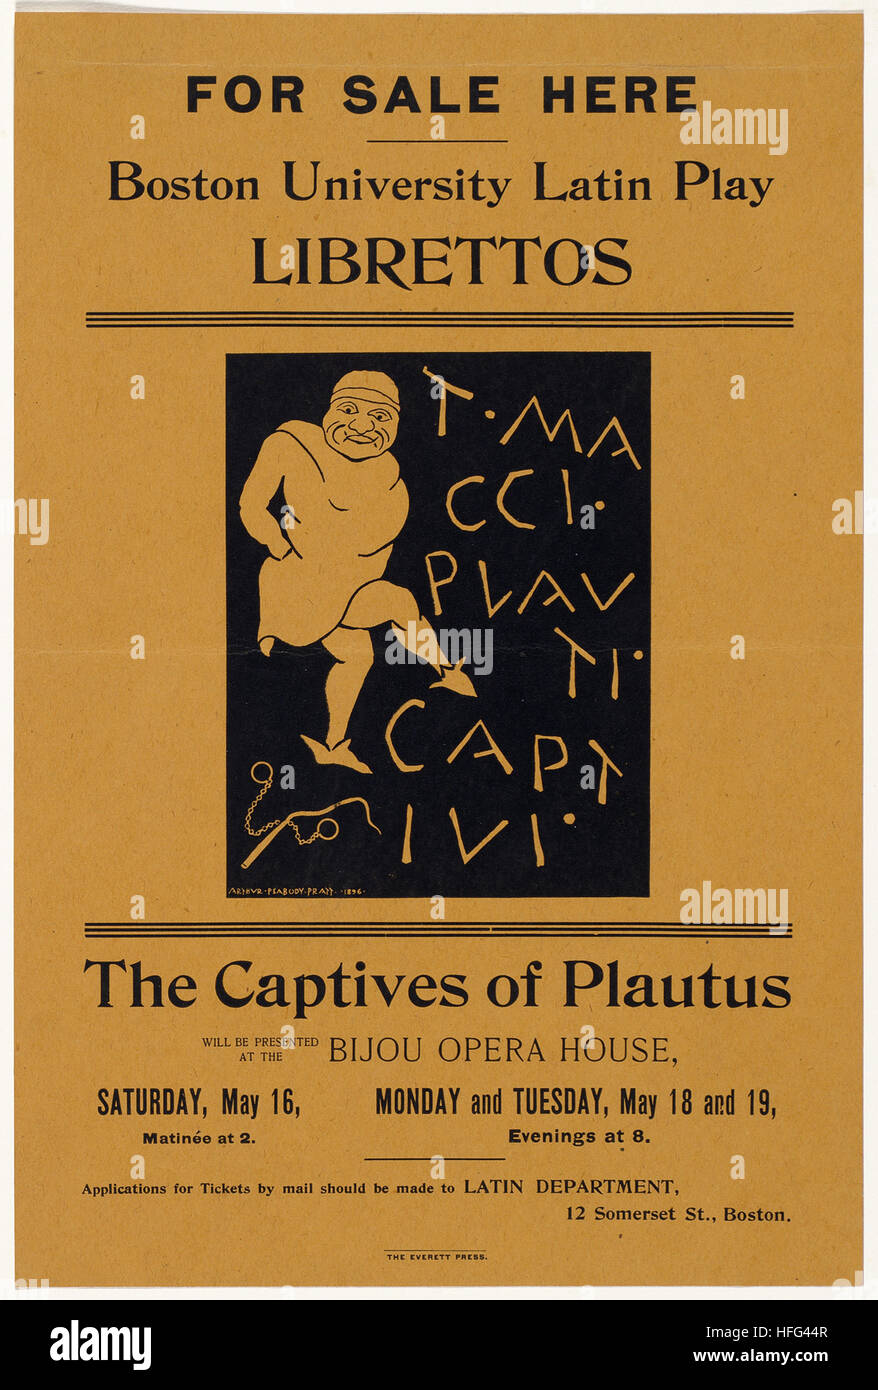 For sale here, Boston University Latin play librettos, the captives of Plautus - Stock Image